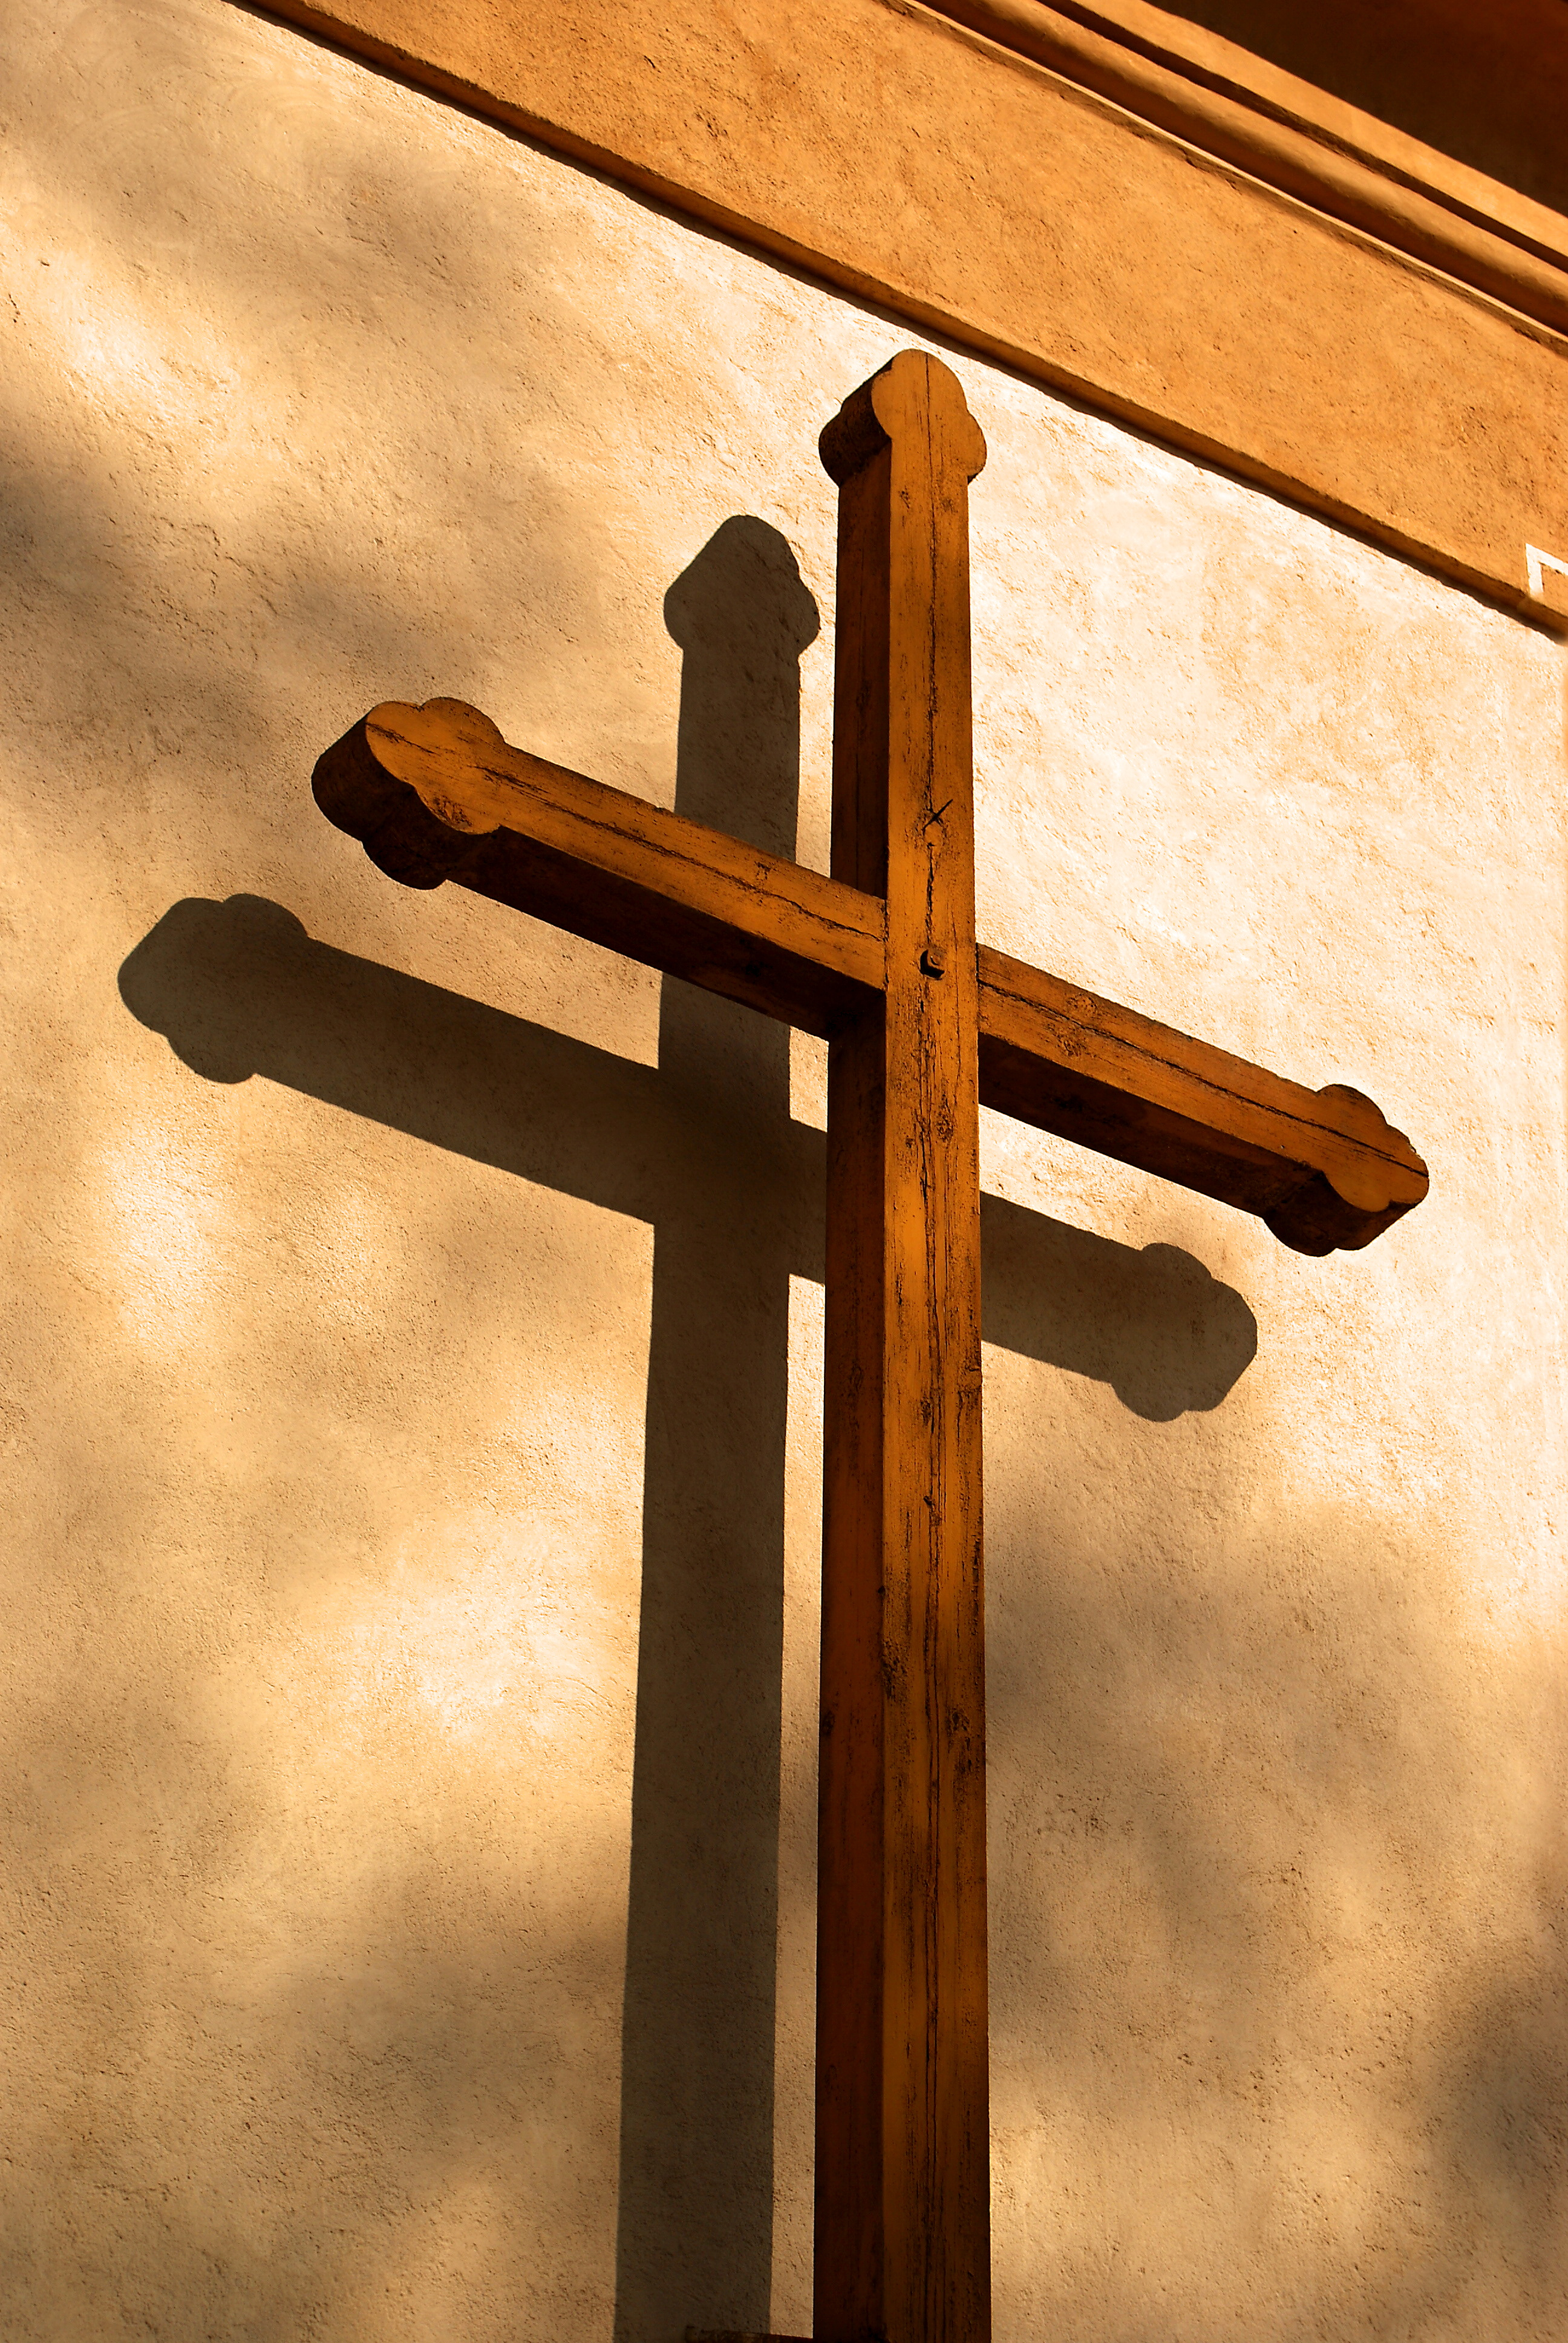 Craft ideas for wooden crosses ehow uk for Cheap wooden crosses for crafts